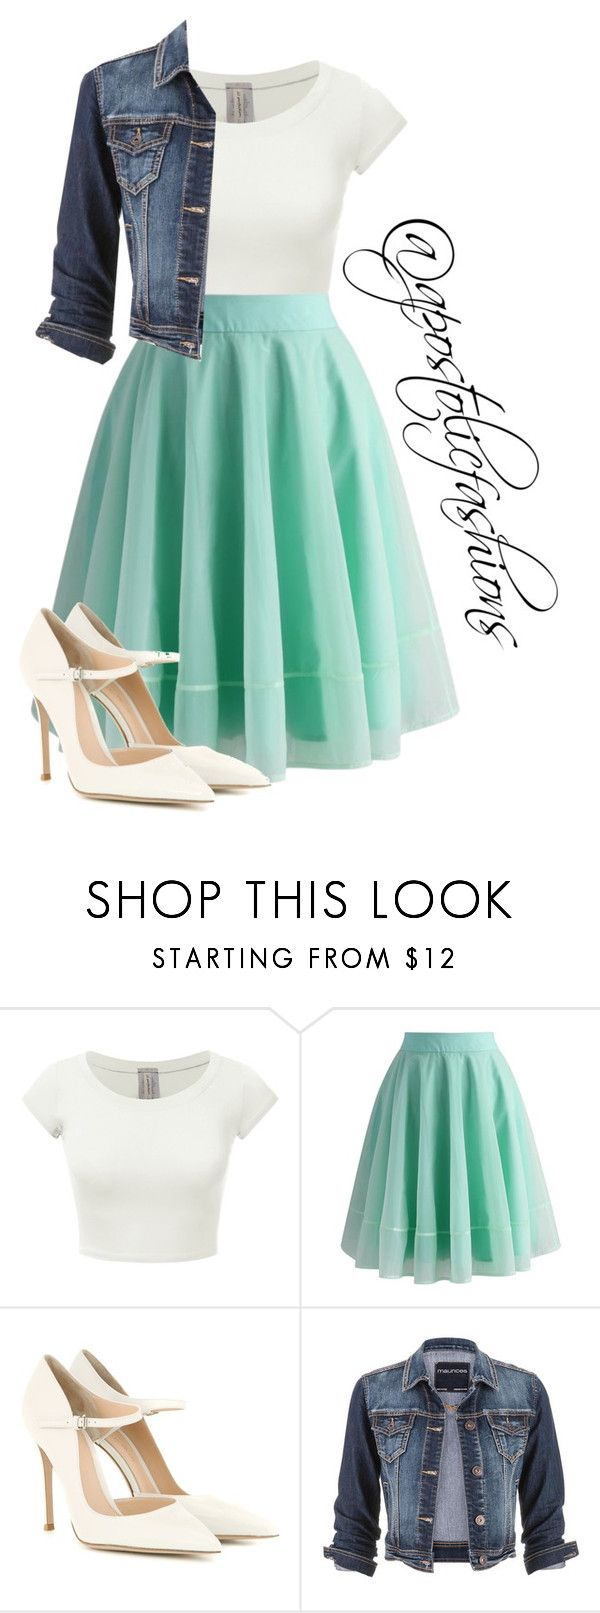 """Apostolic Fashions #1359"" by apostolicfashions ❤ liked on Polyvore featuring Chicwish, Gianvito Rossi, maurices, modestlykay and modestlywhit"